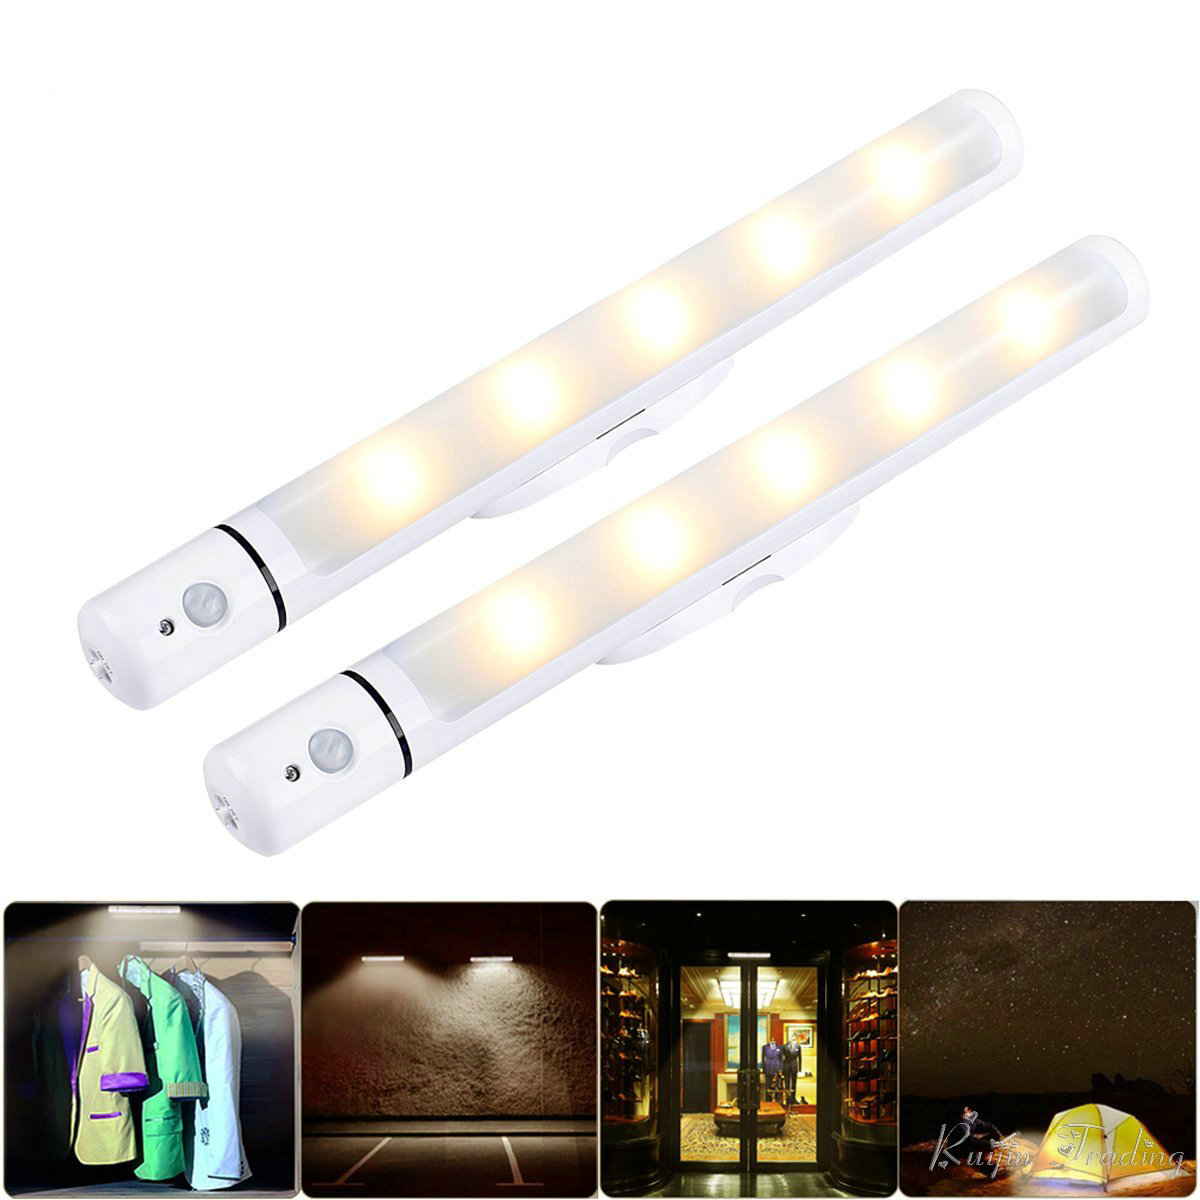 Us 784 49 Offbattery Powered Wall Light Led Motion Sensor Camping Kast Kitchen Cabinet Garage Stairs Closet Flashlight Night Emergency Lamp في